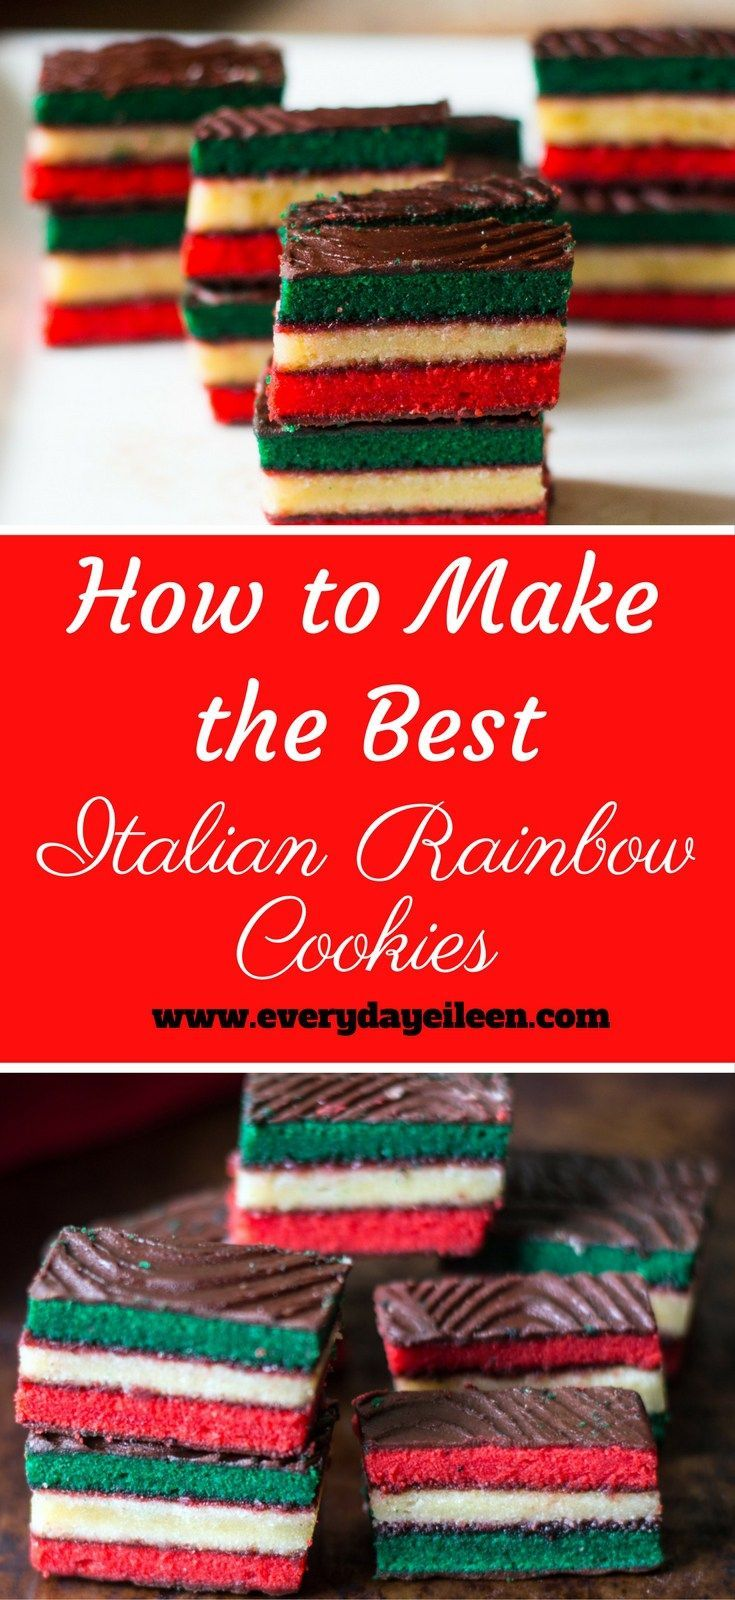 How to Make the Best Italian Rainbow Cookies talian Rainbow Cookies are so popular at many bakeries .Make them at home for an even better flavor ! Perfect for Holidays and family gatherings #ChristmasCookies #HolidayCookies #ItalianCookies #CookieExchange #baking #cookies